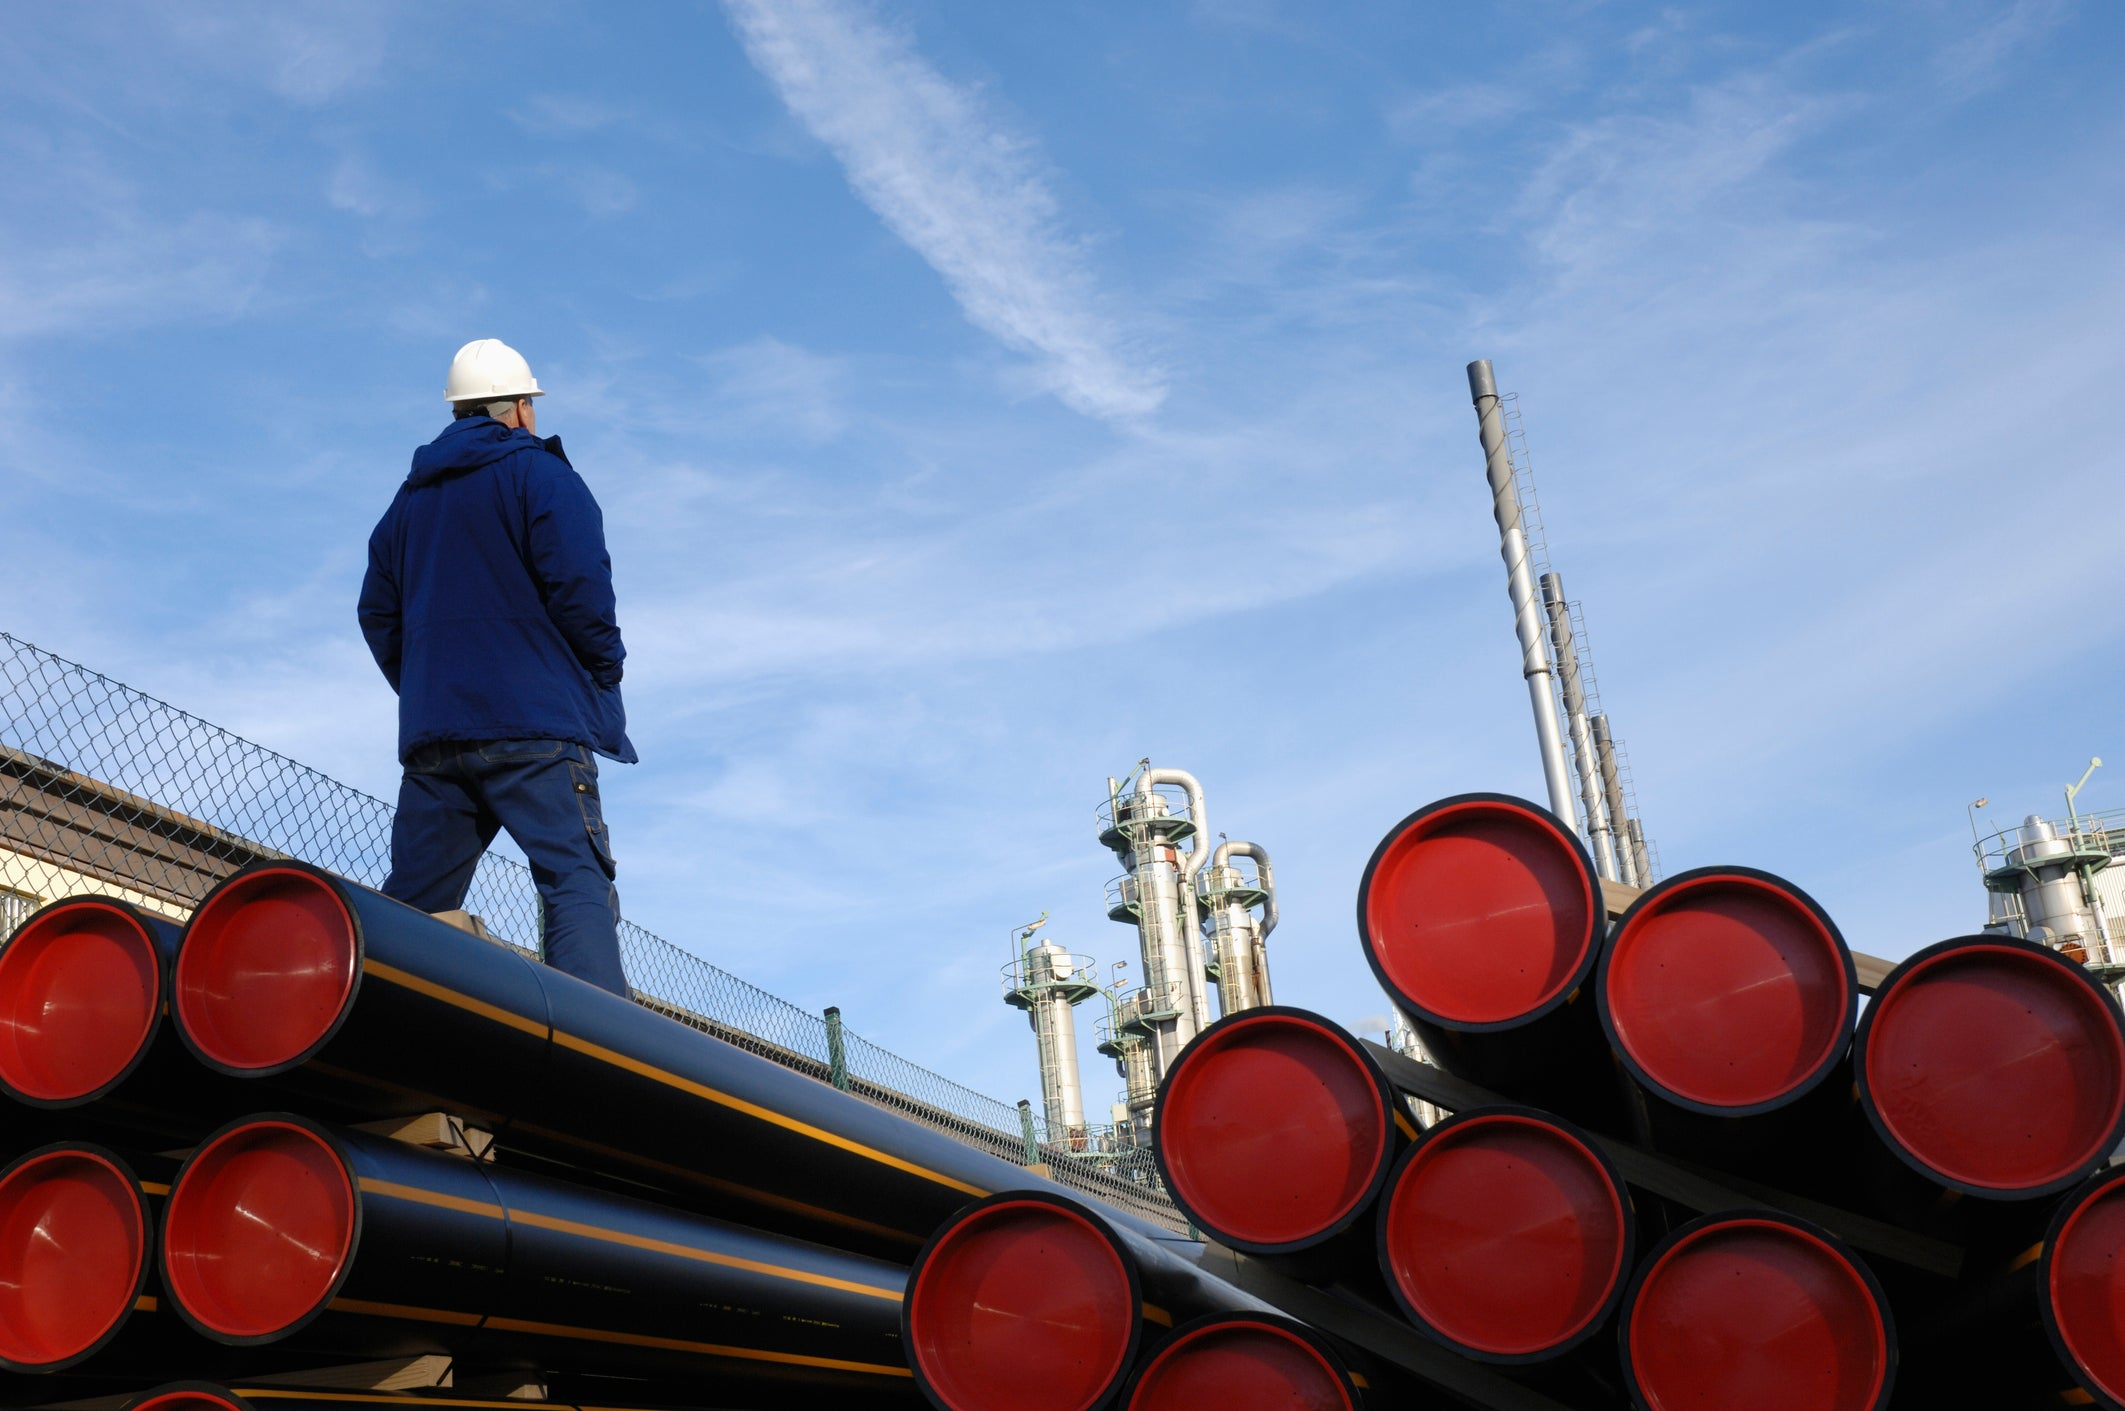 A person in a hard hat standing near a stack of pipelines